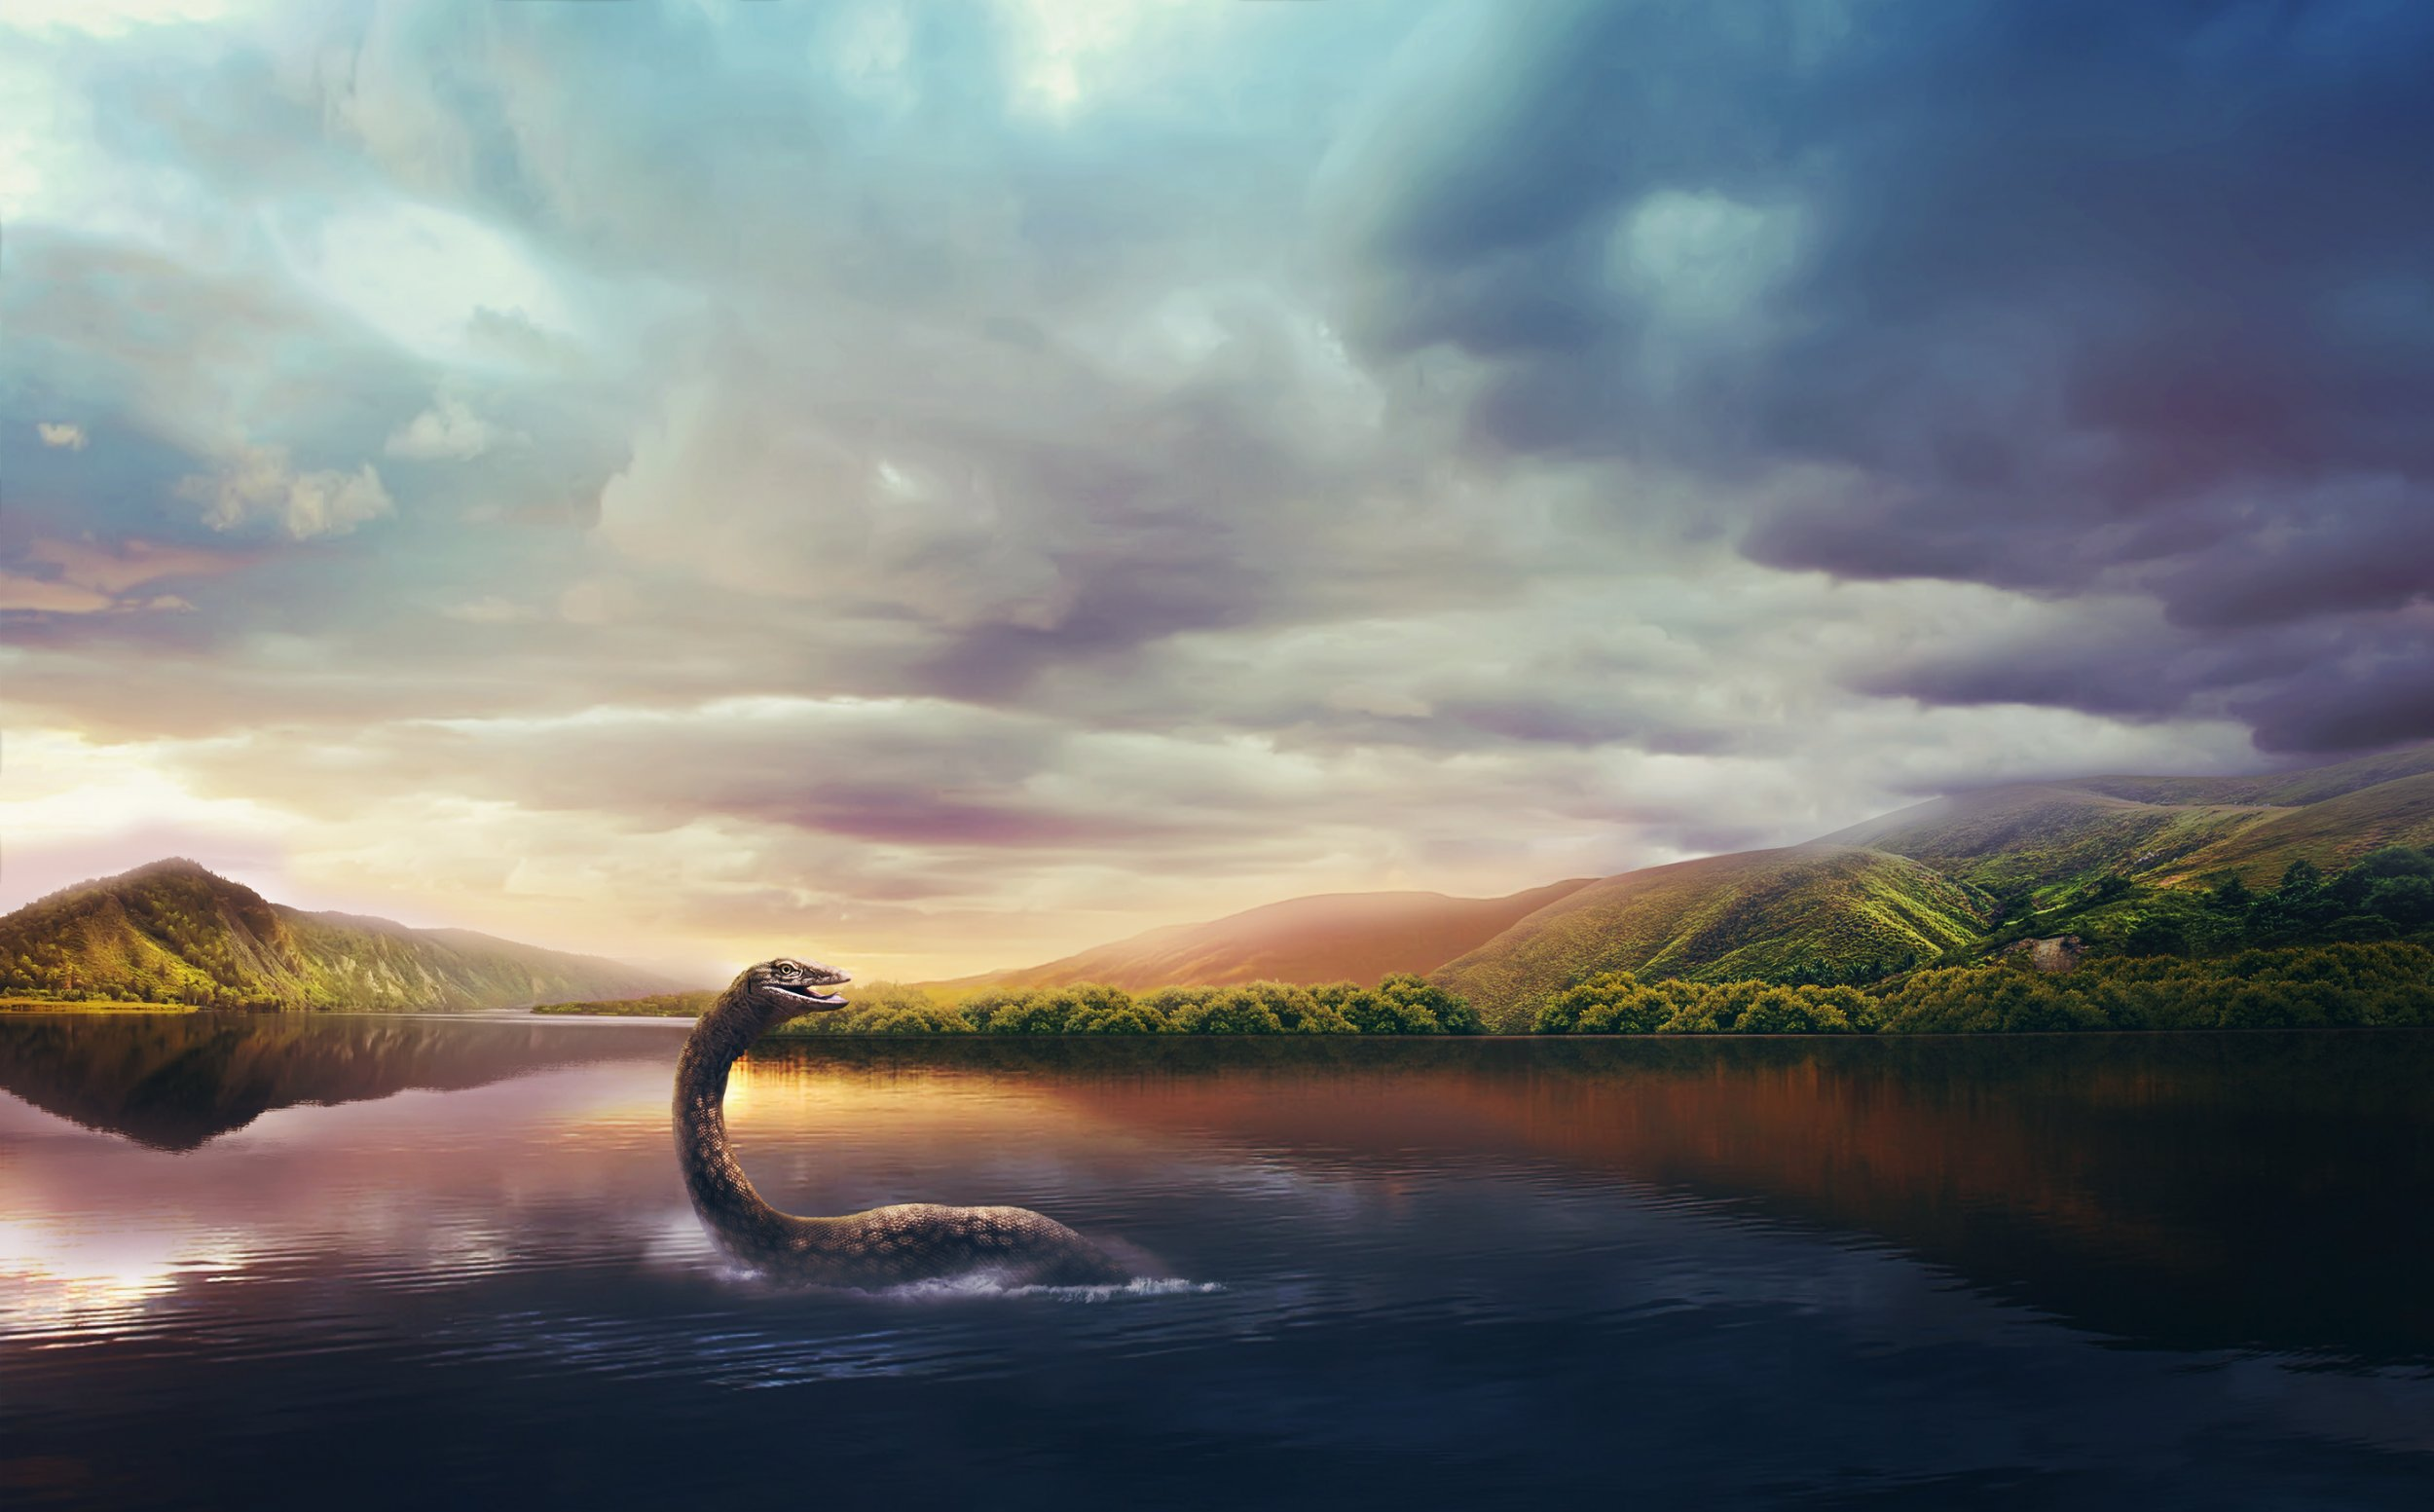 Loch Ness Monster Dna Proof Would Activate Government Plan